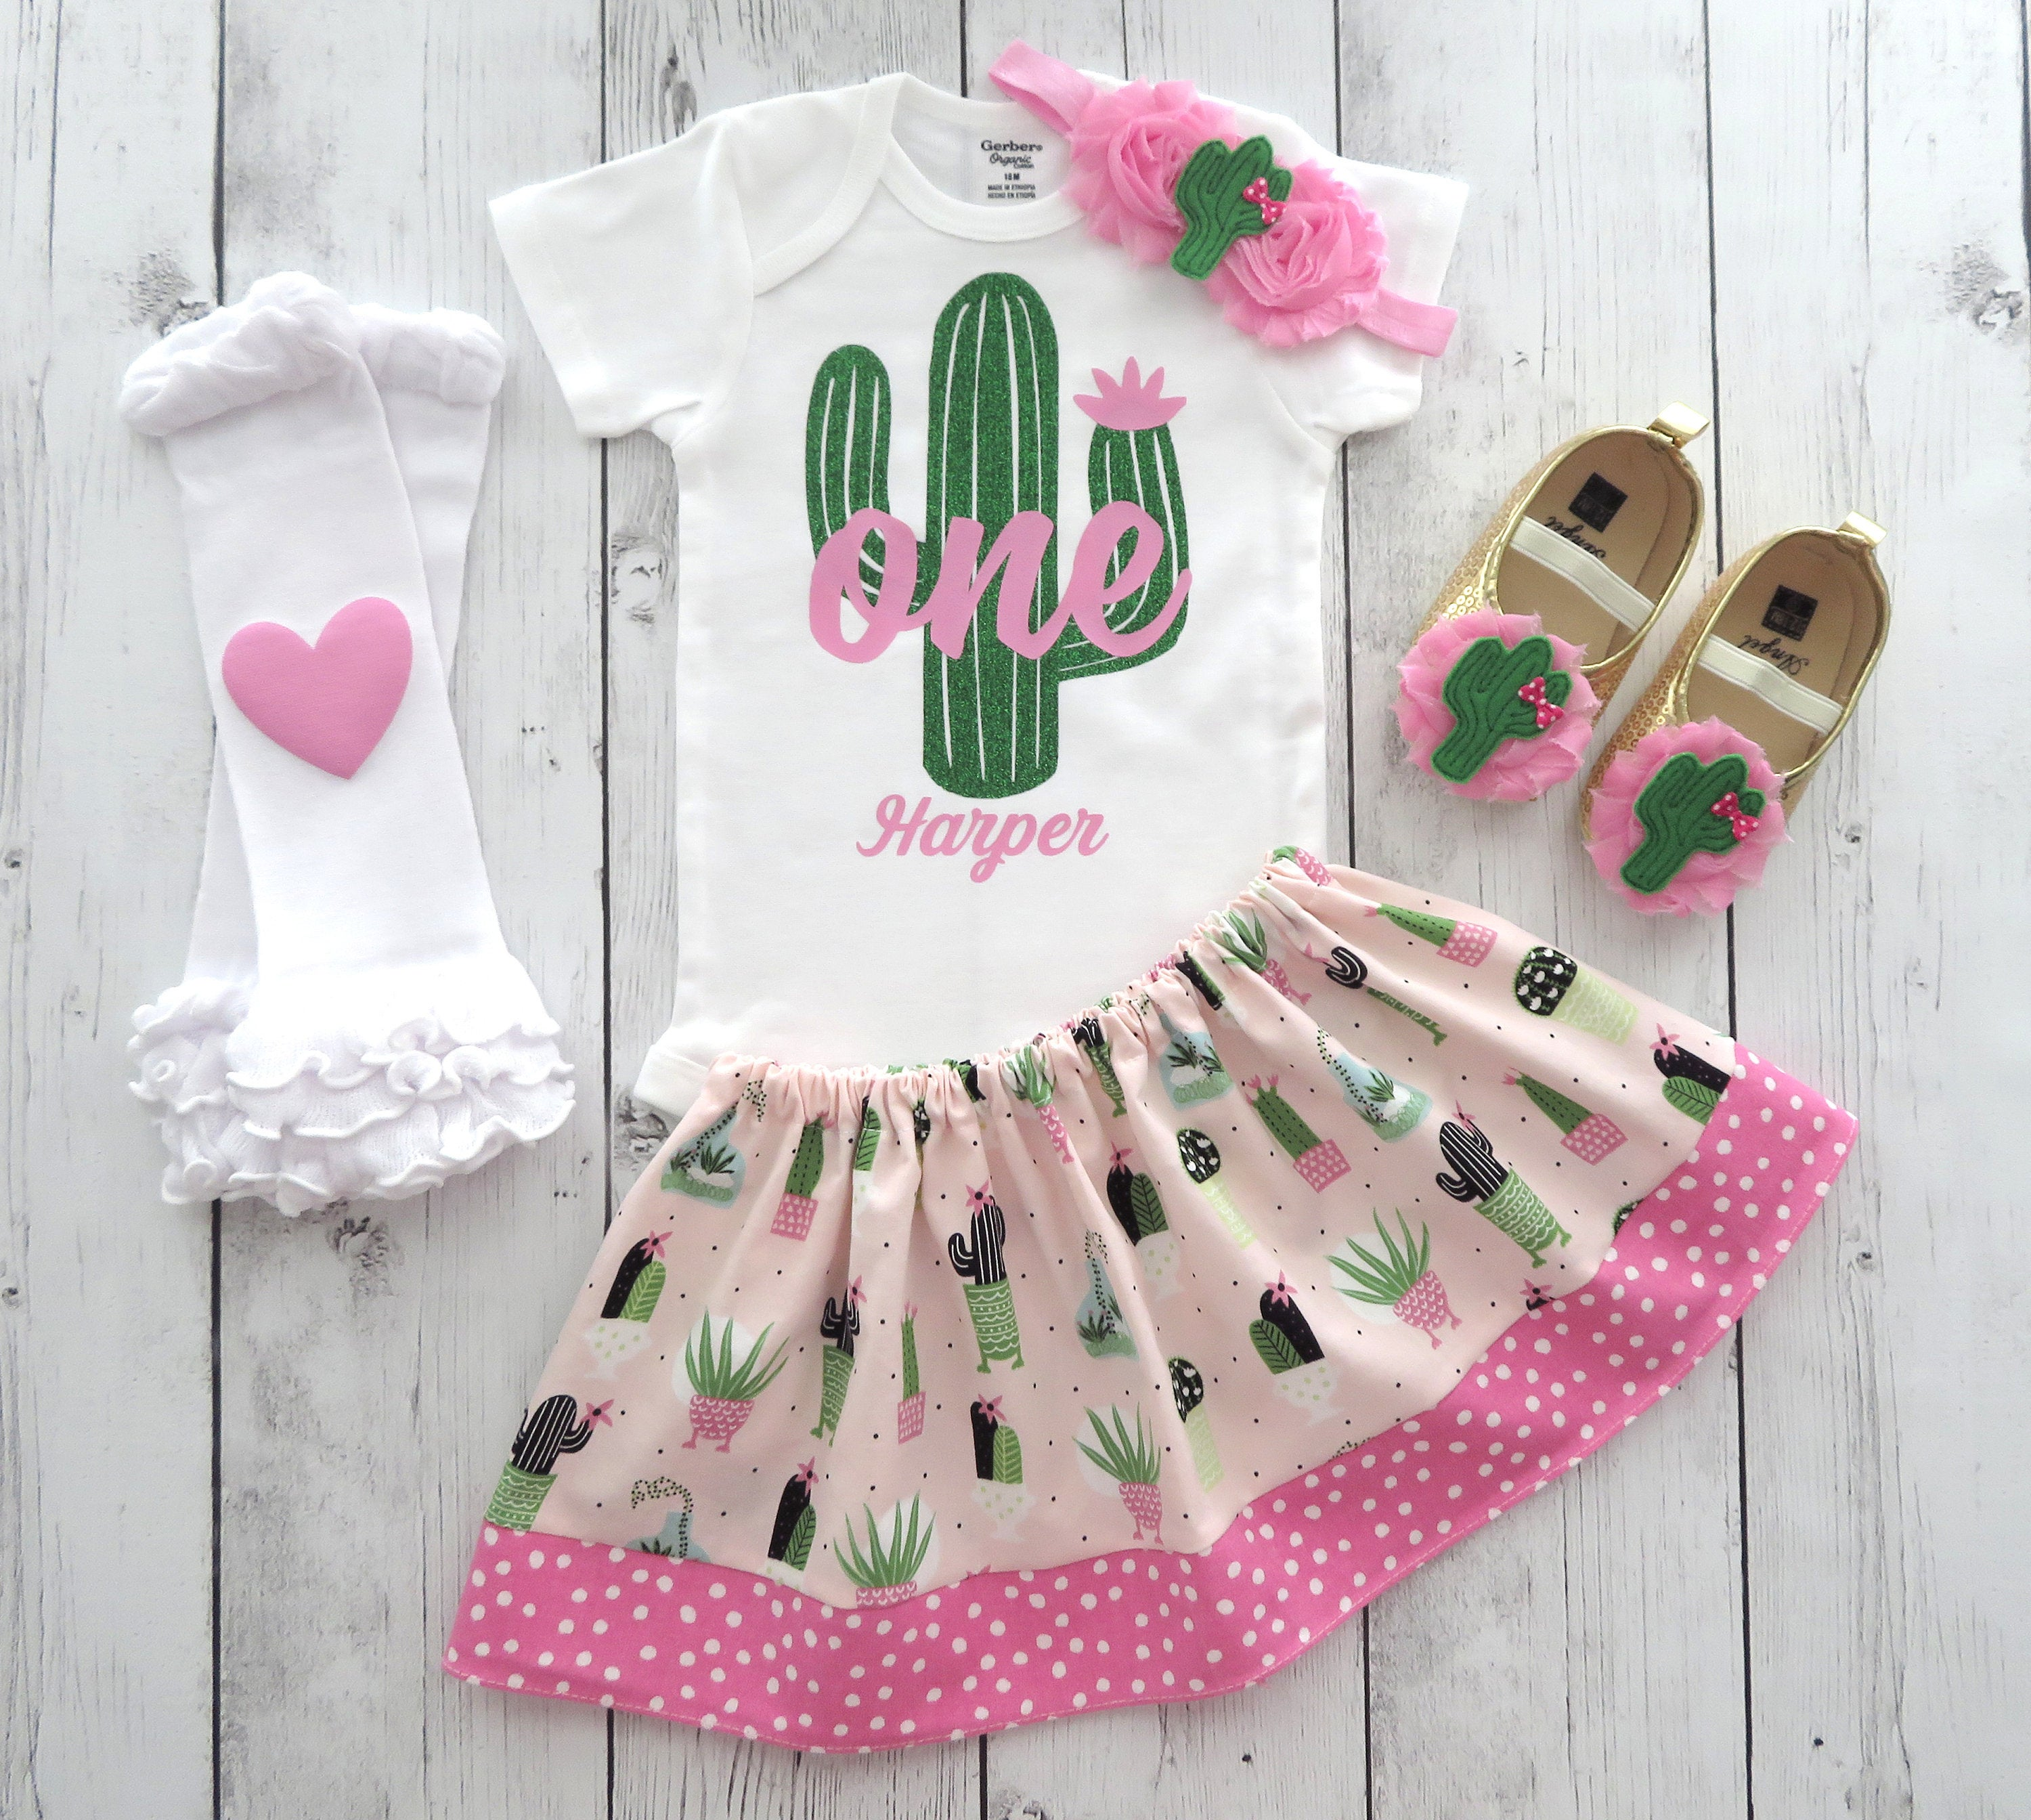 Cactus First Birthday Outfit for Girl - 1st birthday outfit, cactus birthday, first birthday girl, fiesta birthday, cactus outfit pink